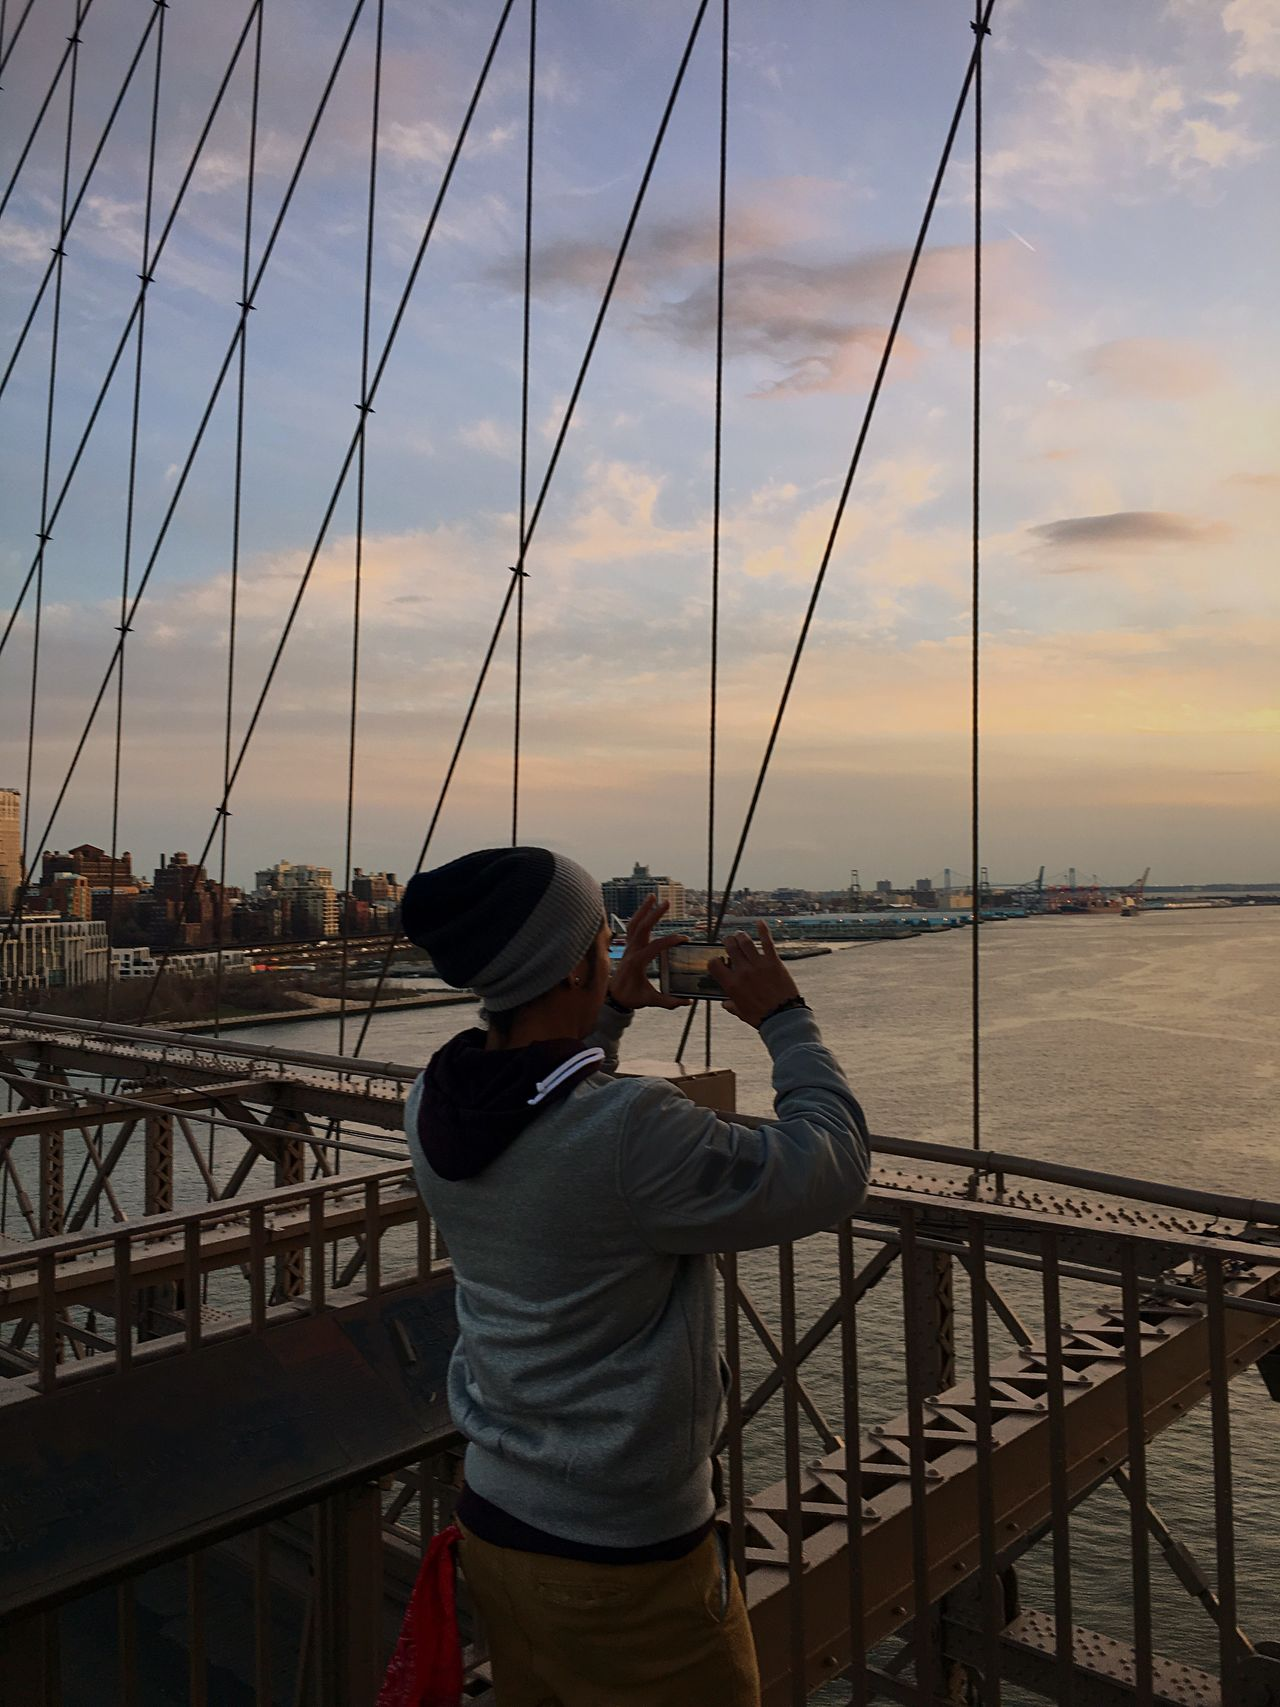 Mobile Conversations Sky Standing Holding Sea Photography Themes Water Railing One Person Men Outdoors Camera - Photographic Equipment Rear View People Adult Adults Only Day One Man Only Fishing Pole